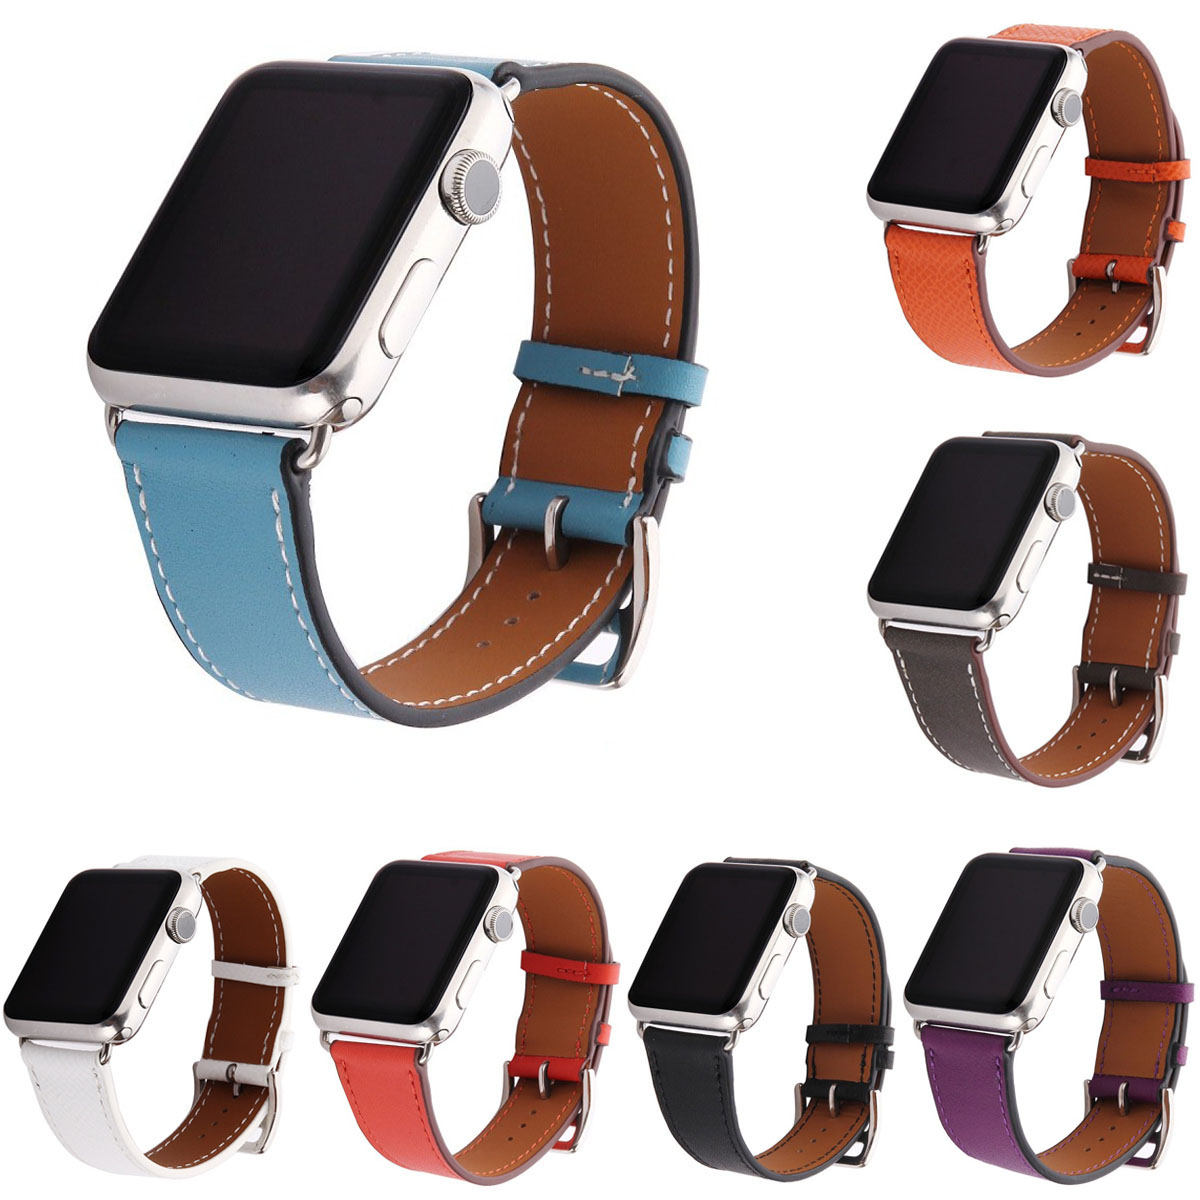 Single Tour Watch Strap for Apple Watch Band Series 1/2/3 Genuine Leather Watchbands for Apple iWatch 38mm 42mm Bracelet istrap black brown red france genuine calf leather single tour bracelet watch strap for iwatch apple watch band 38mm 42mm